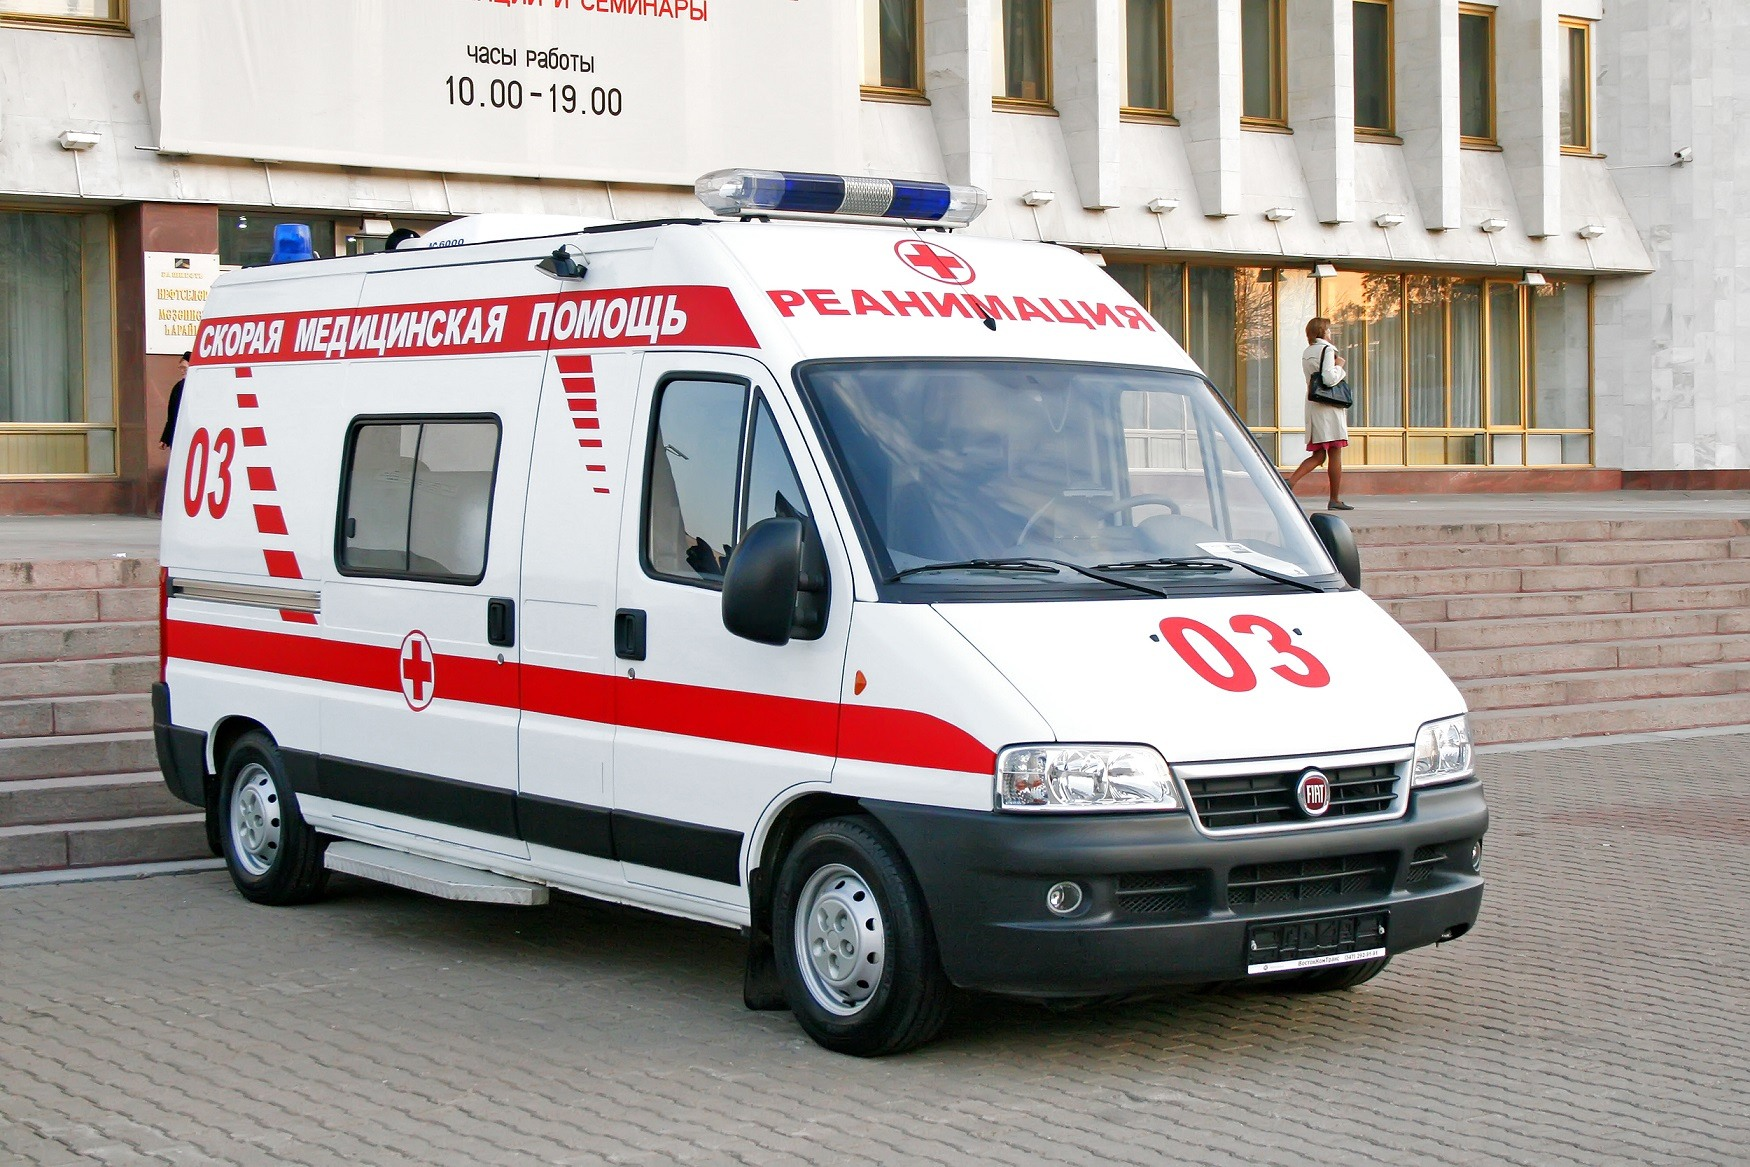 White Fiat Ducato ambulance vehicle parked at the city street in Russia